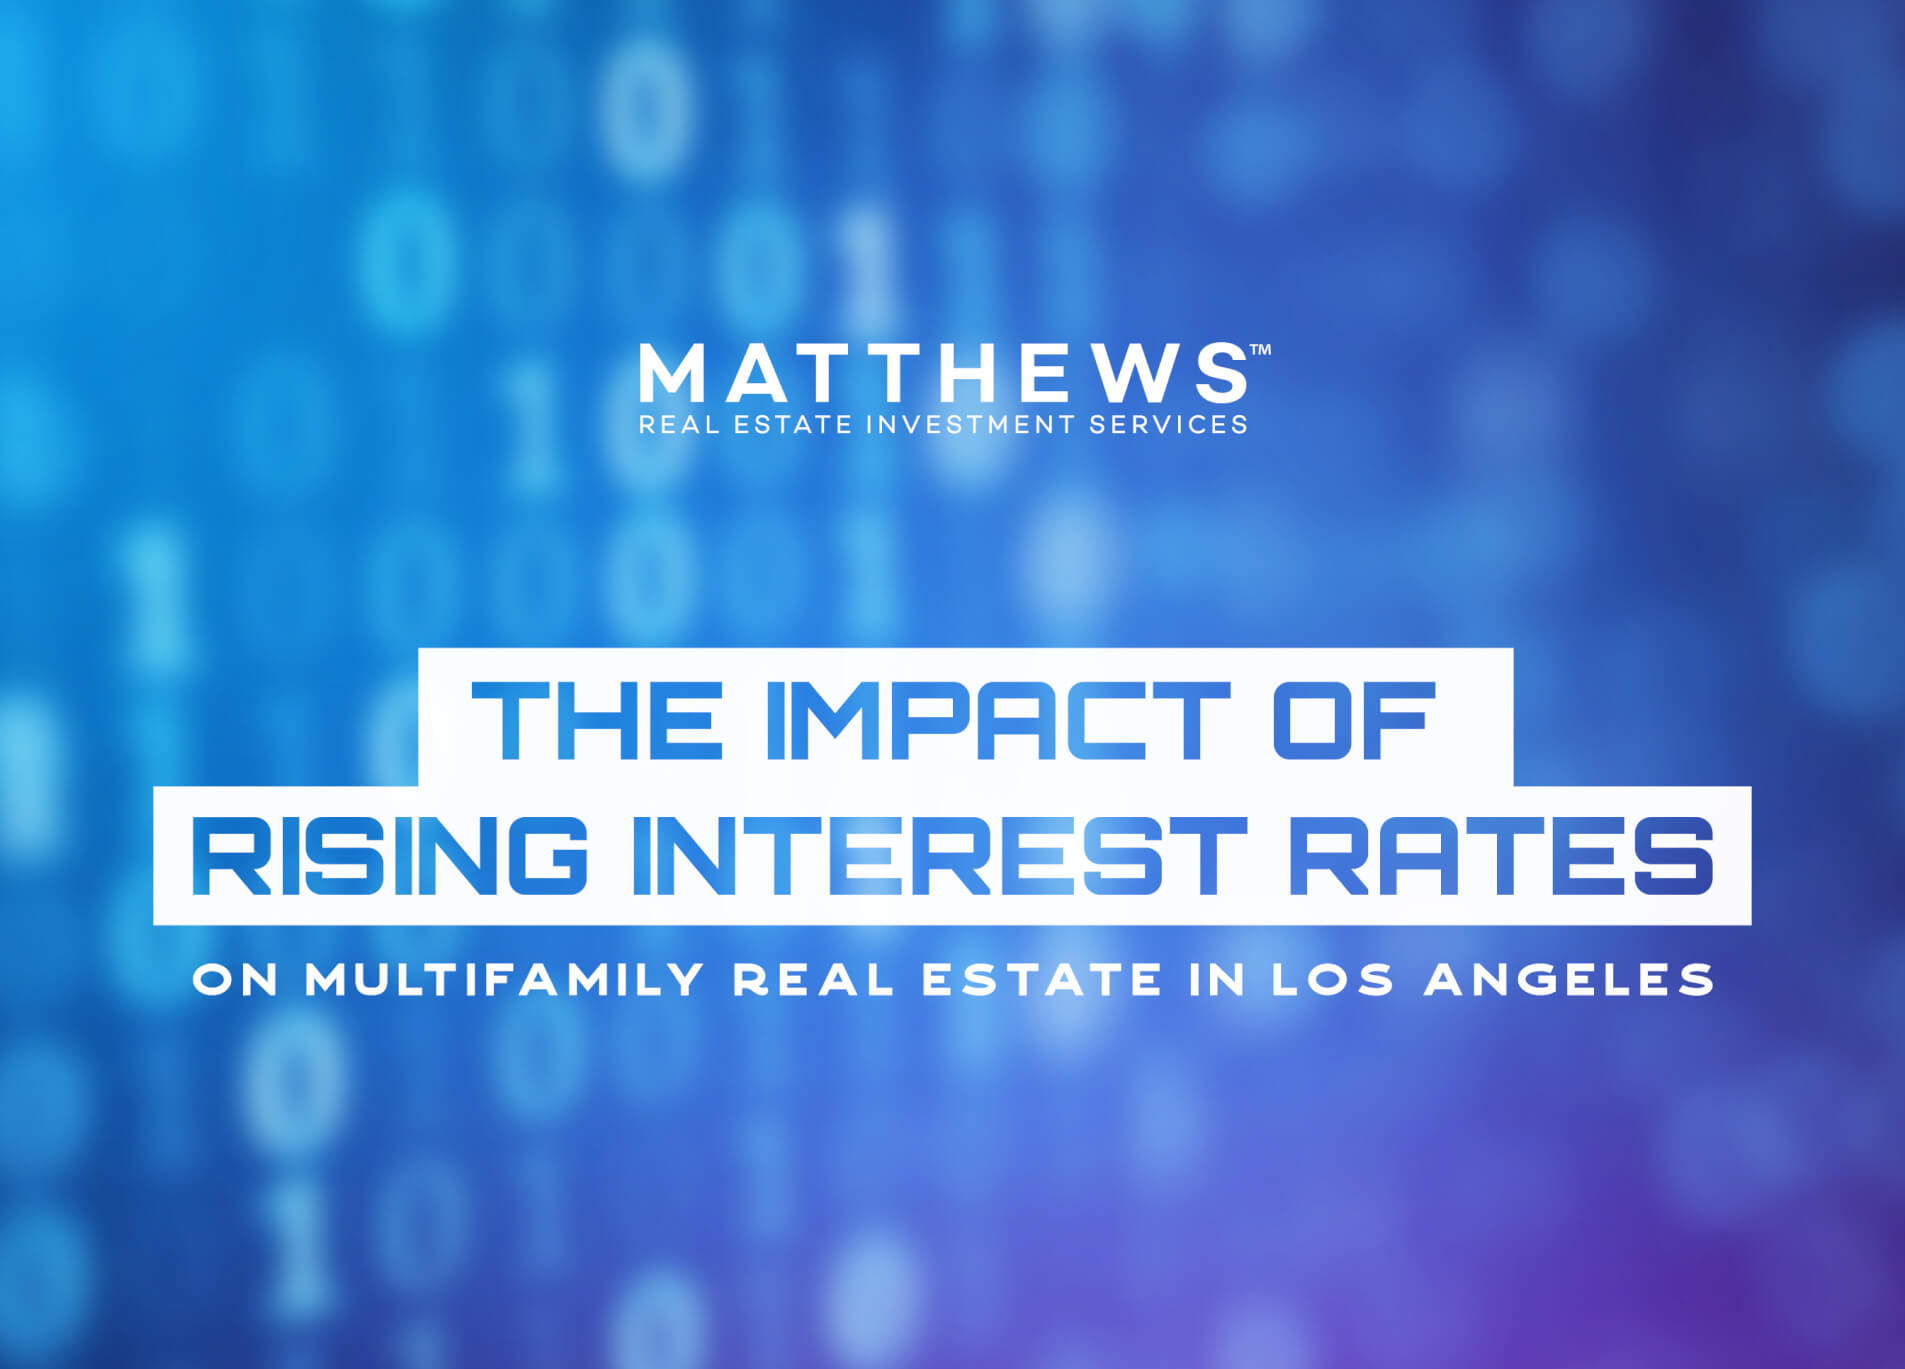 The Impact of Rising Interest Rates